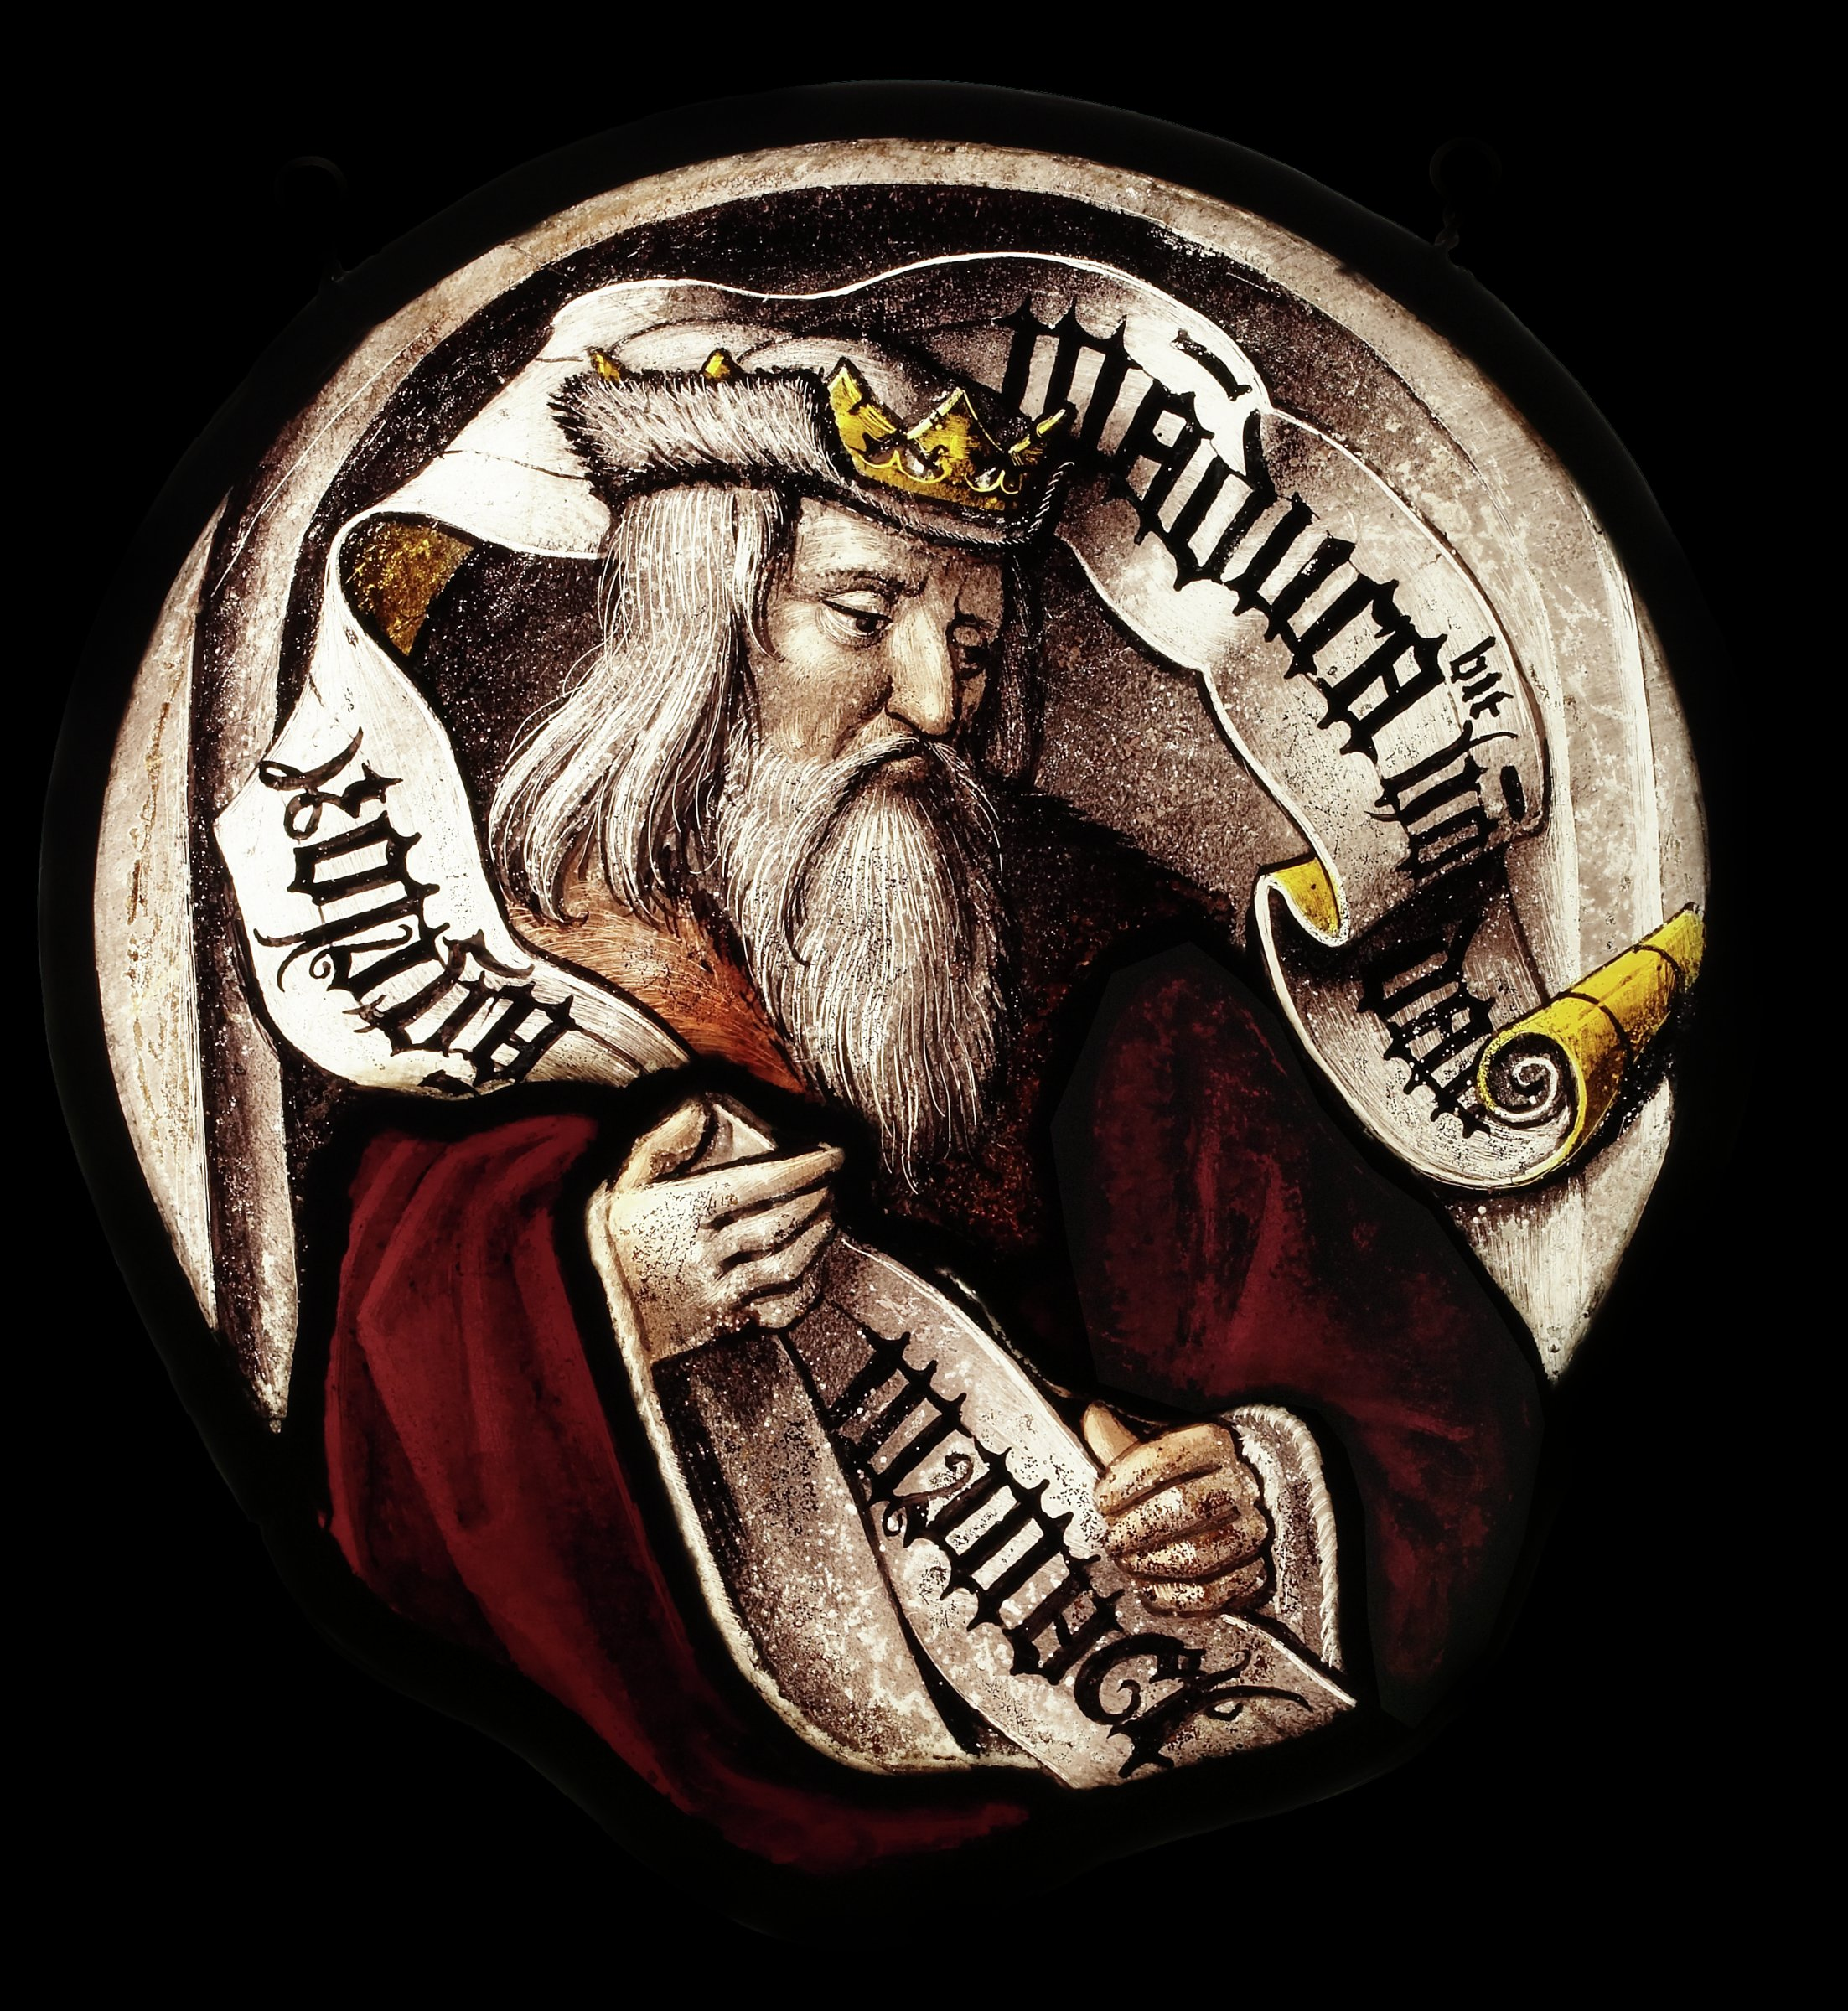 A bust-length image of King David with long white hair and beard wearing a crown and holding an inscribed banderole.